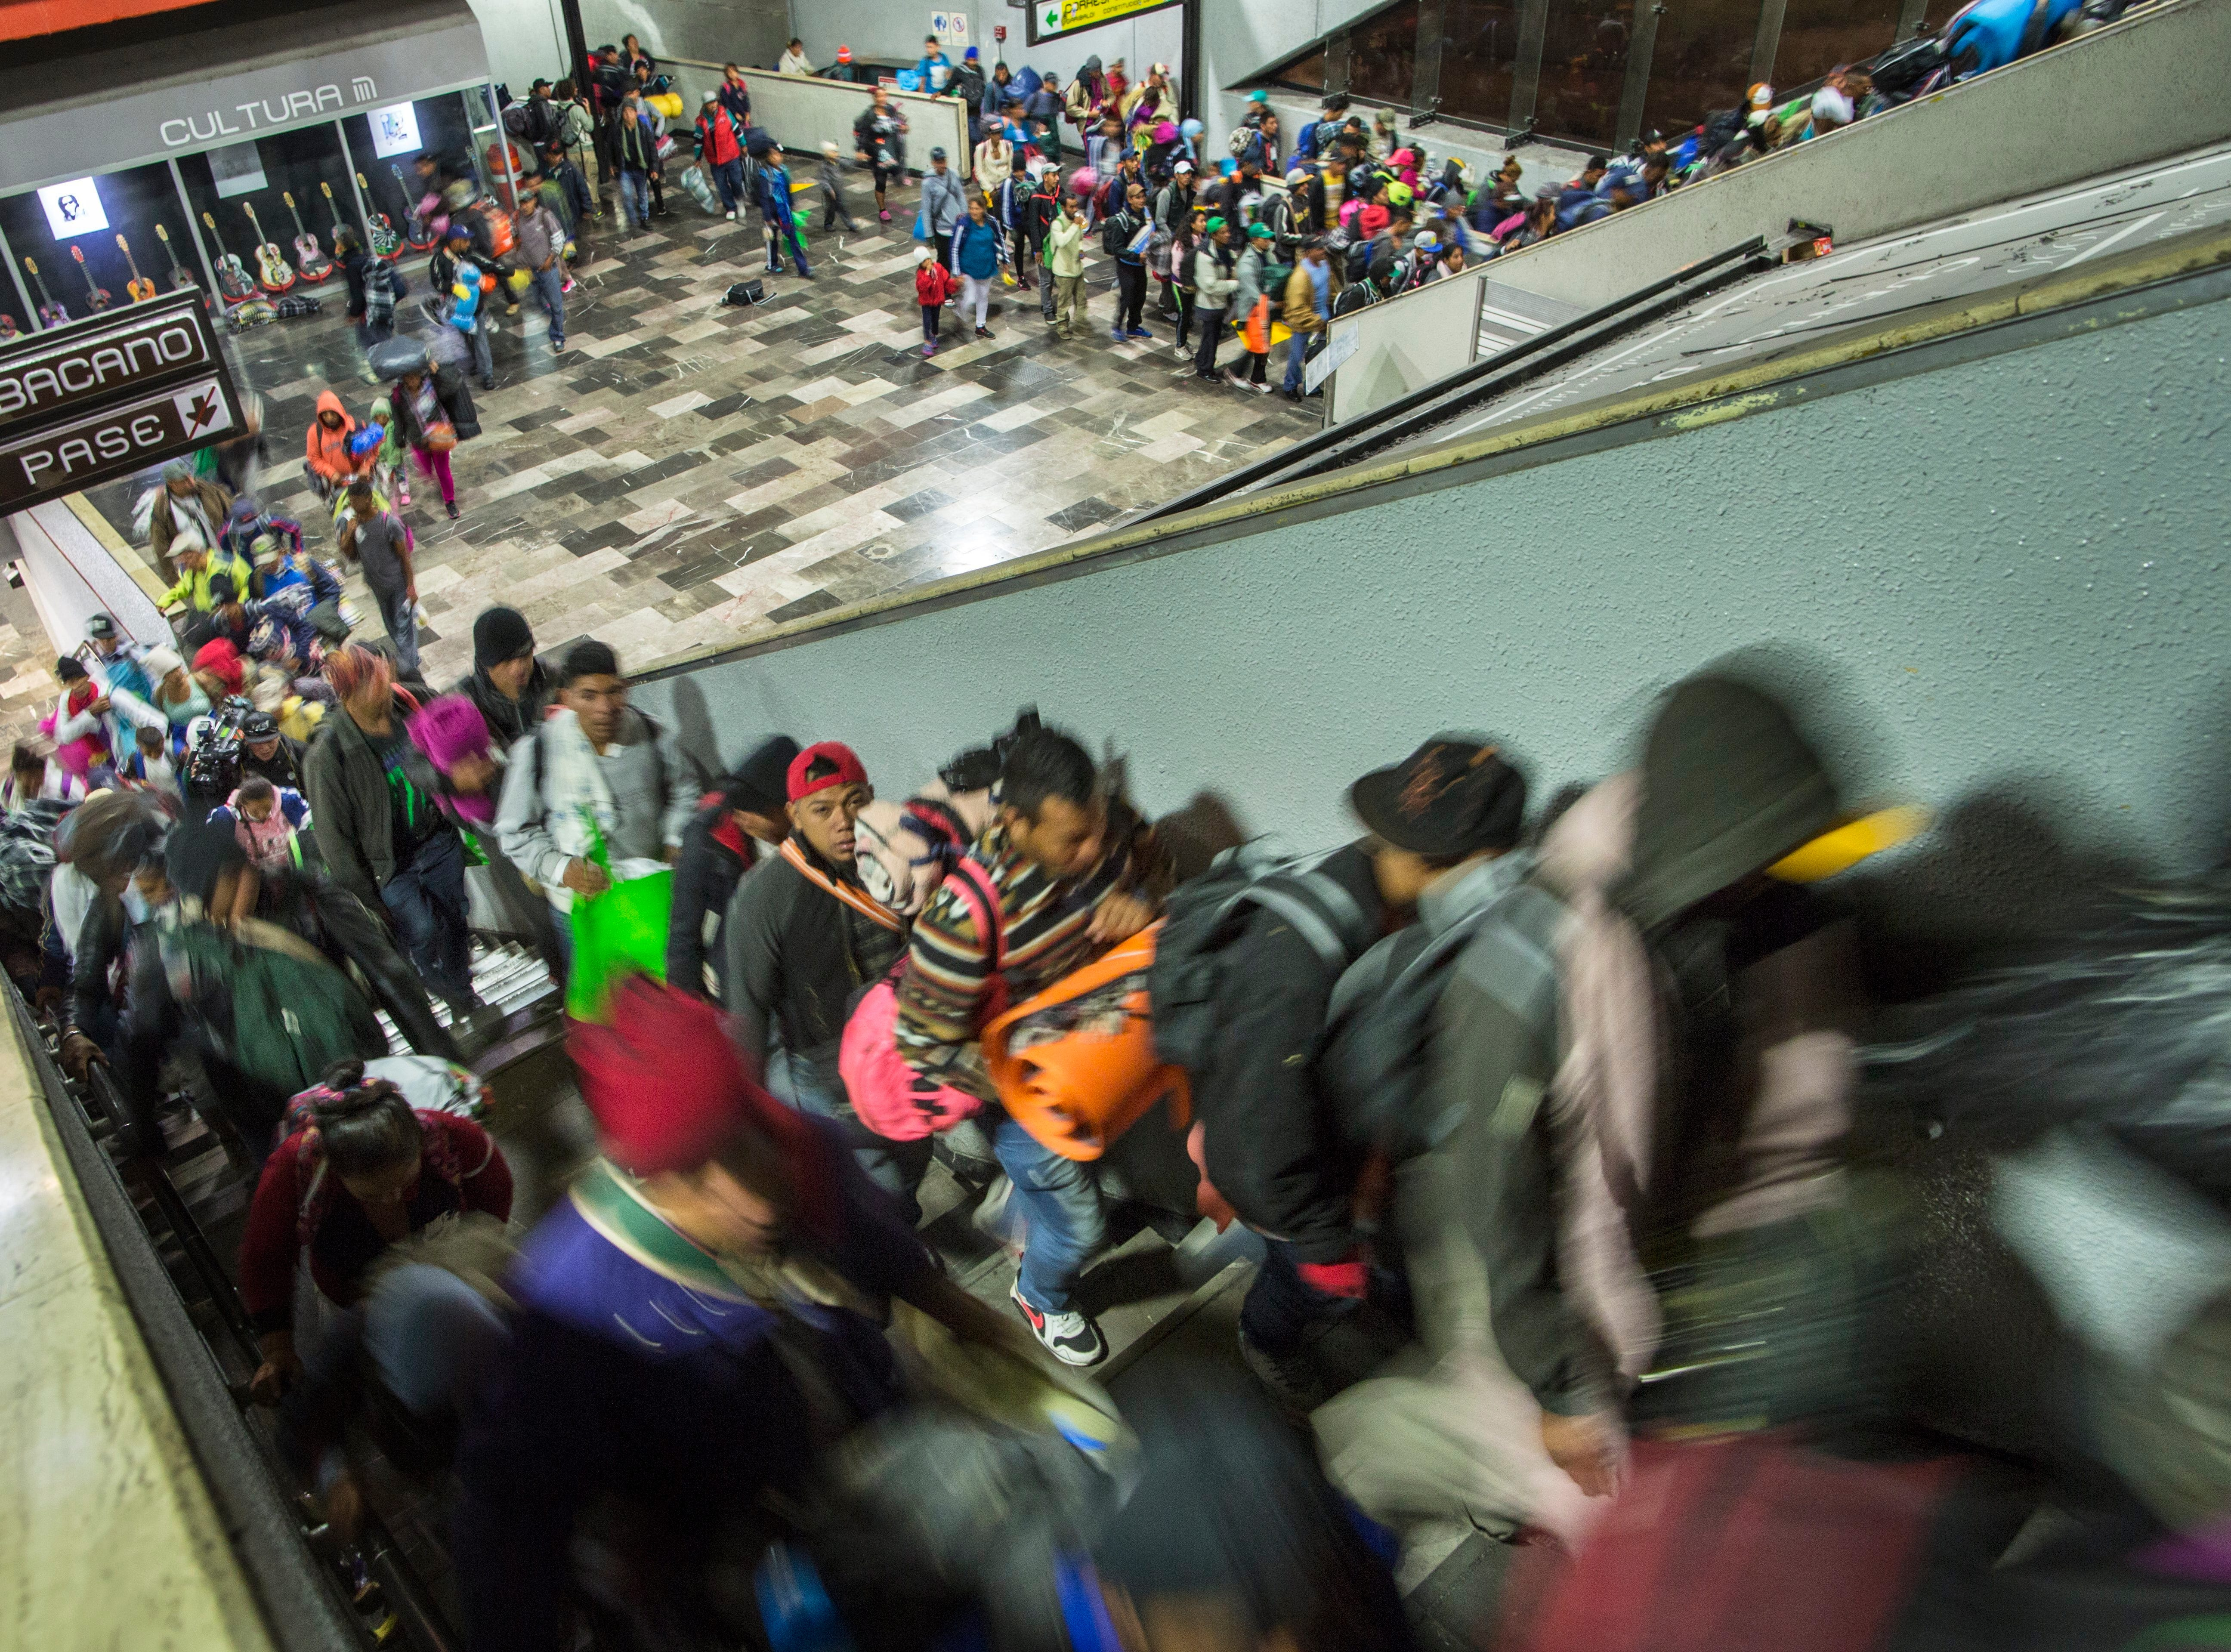 Central American migrants ride an escalator at a subway station as they resume their journey north after leaving the temporary shelter at the Jesus Martinez stadium, in Mexico City, Saturday, Nov. 10, 2018.